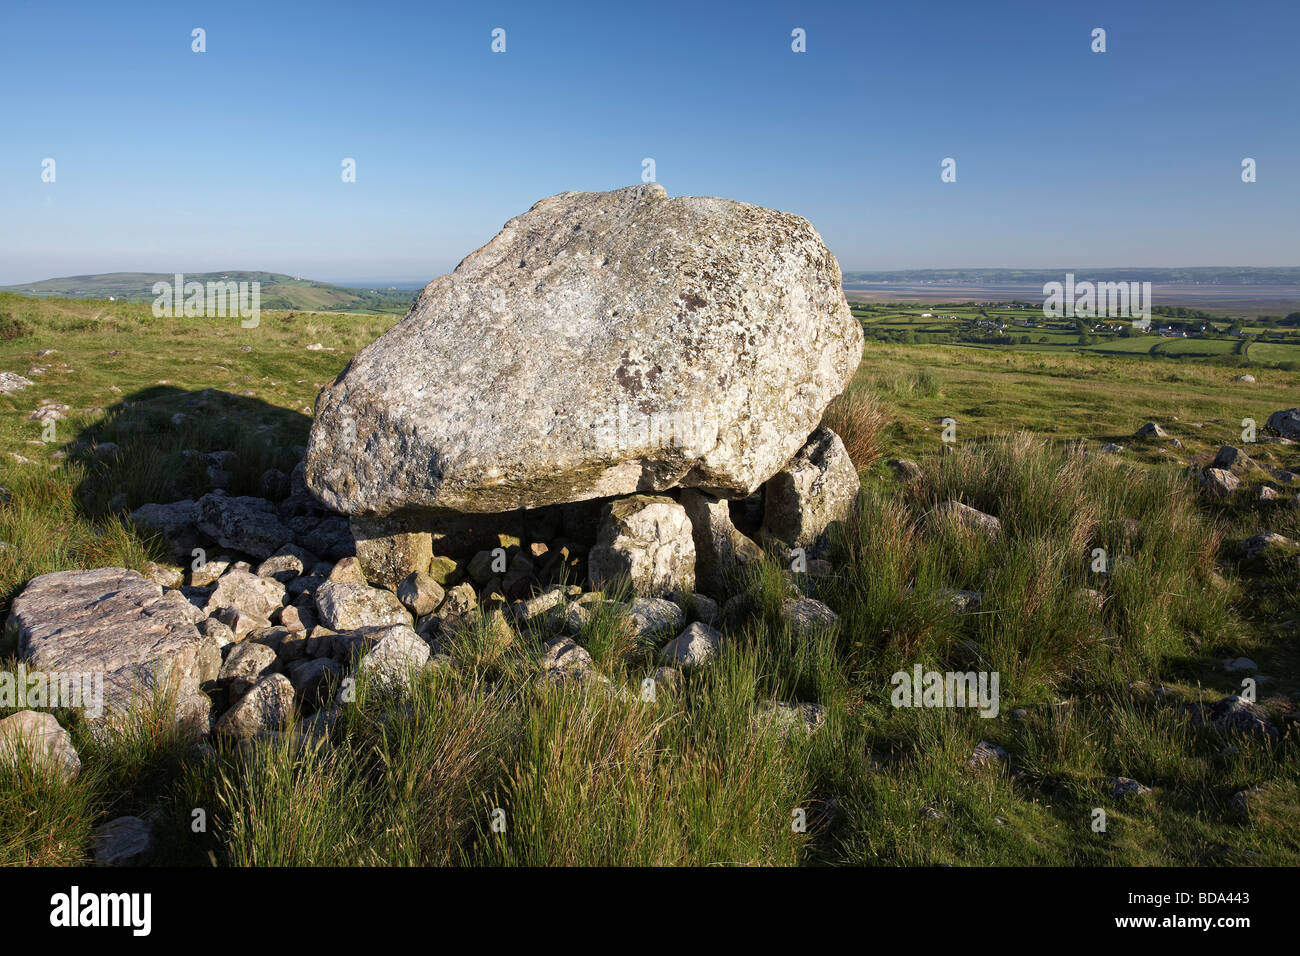 Arthur's Stone burial chamber tomb Gower Peninsula Wales UK - Stock Image